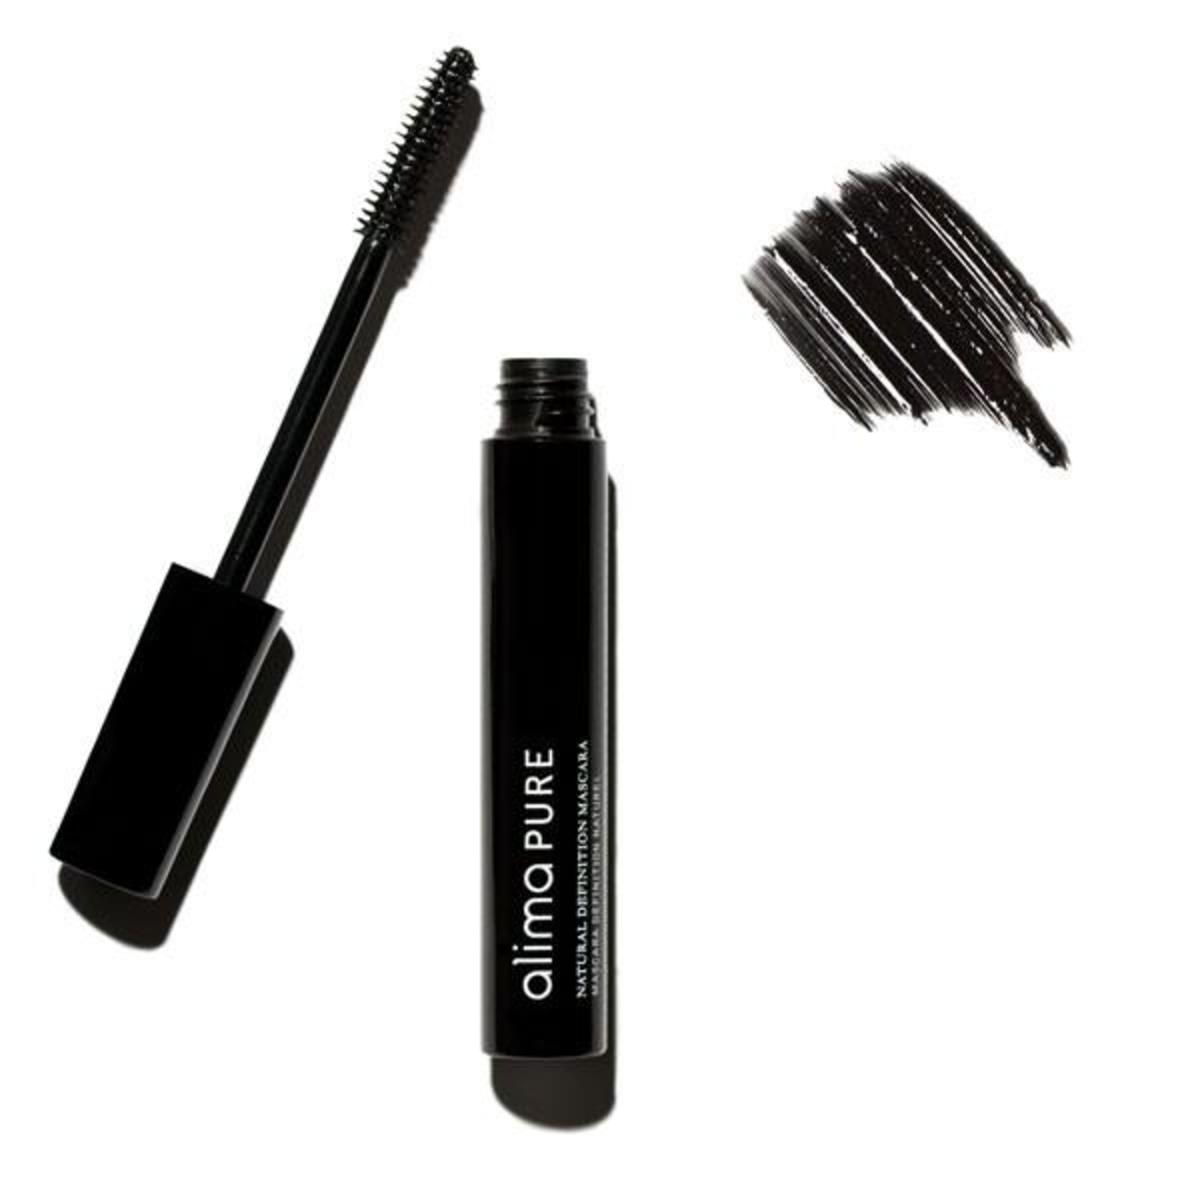 Alima Black-Natural-Definition-Mascara-Alima-Pure_ba040e9e-cb2e-4b5f-b139-d67c44b3853b